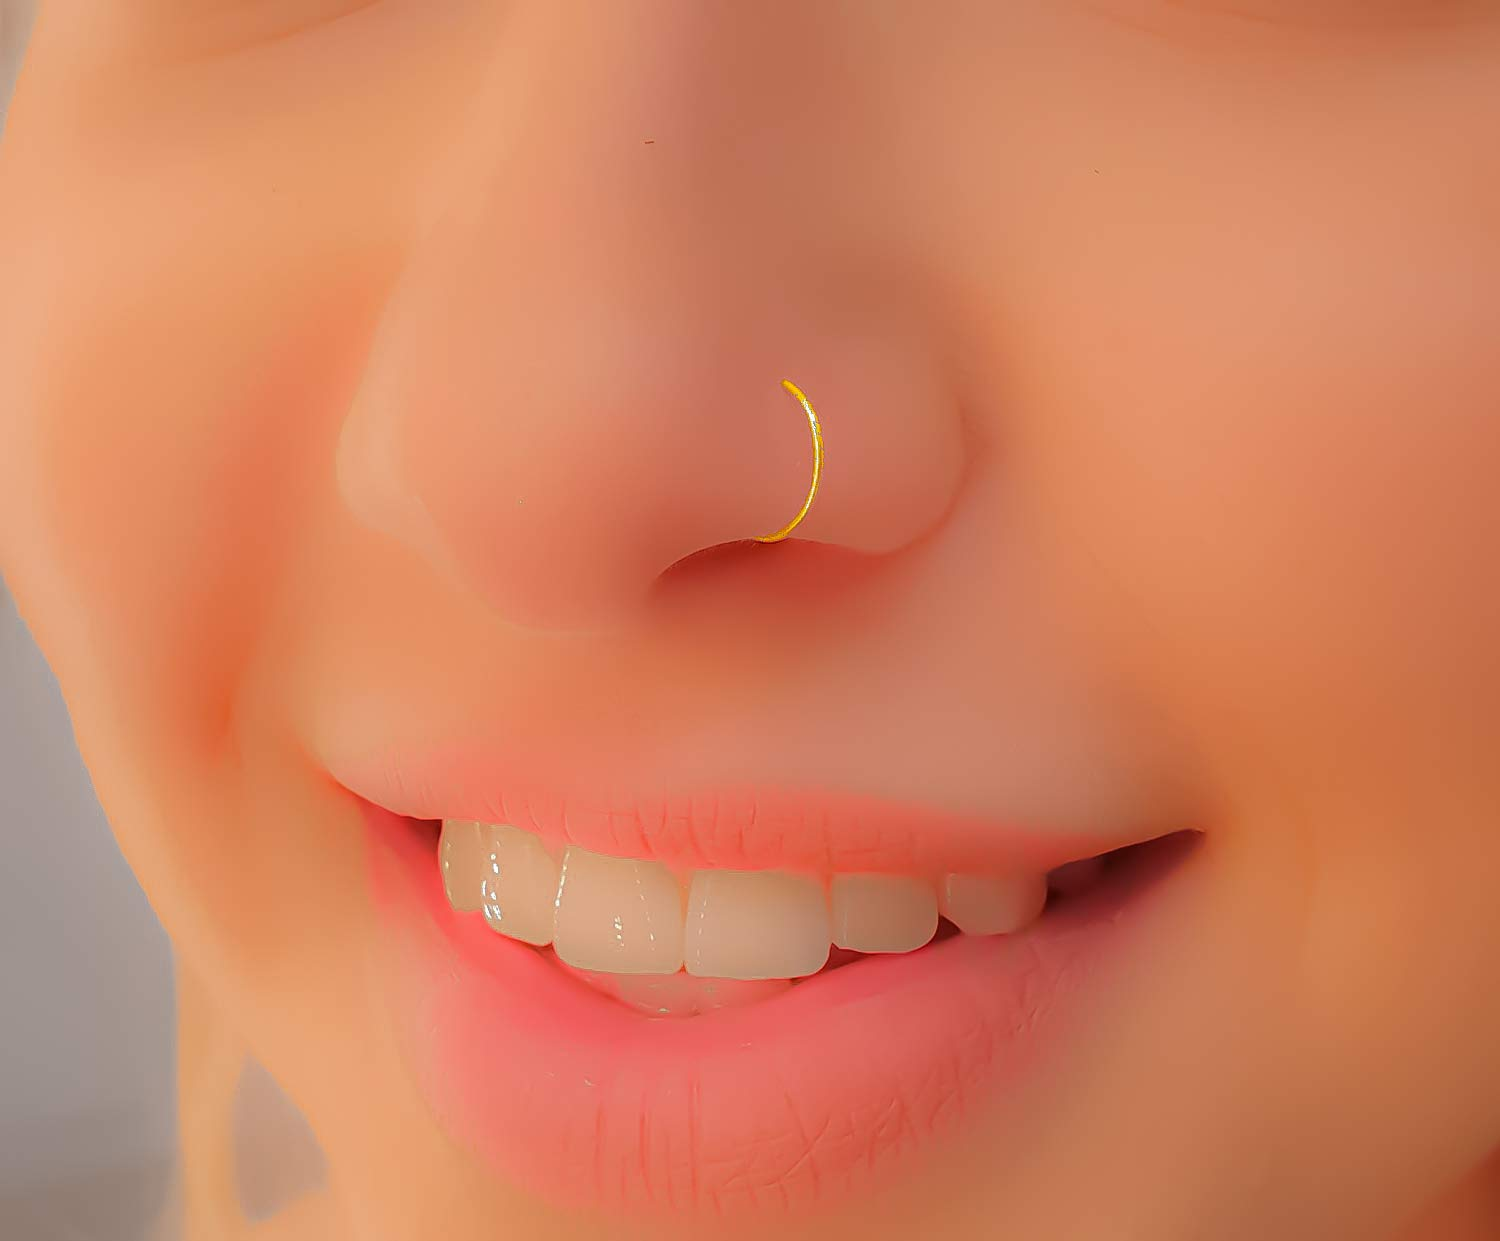 Nose Hoop 22g Nose Hoop Nose Ring Hoop Tiny Nose Hoop Small Nose